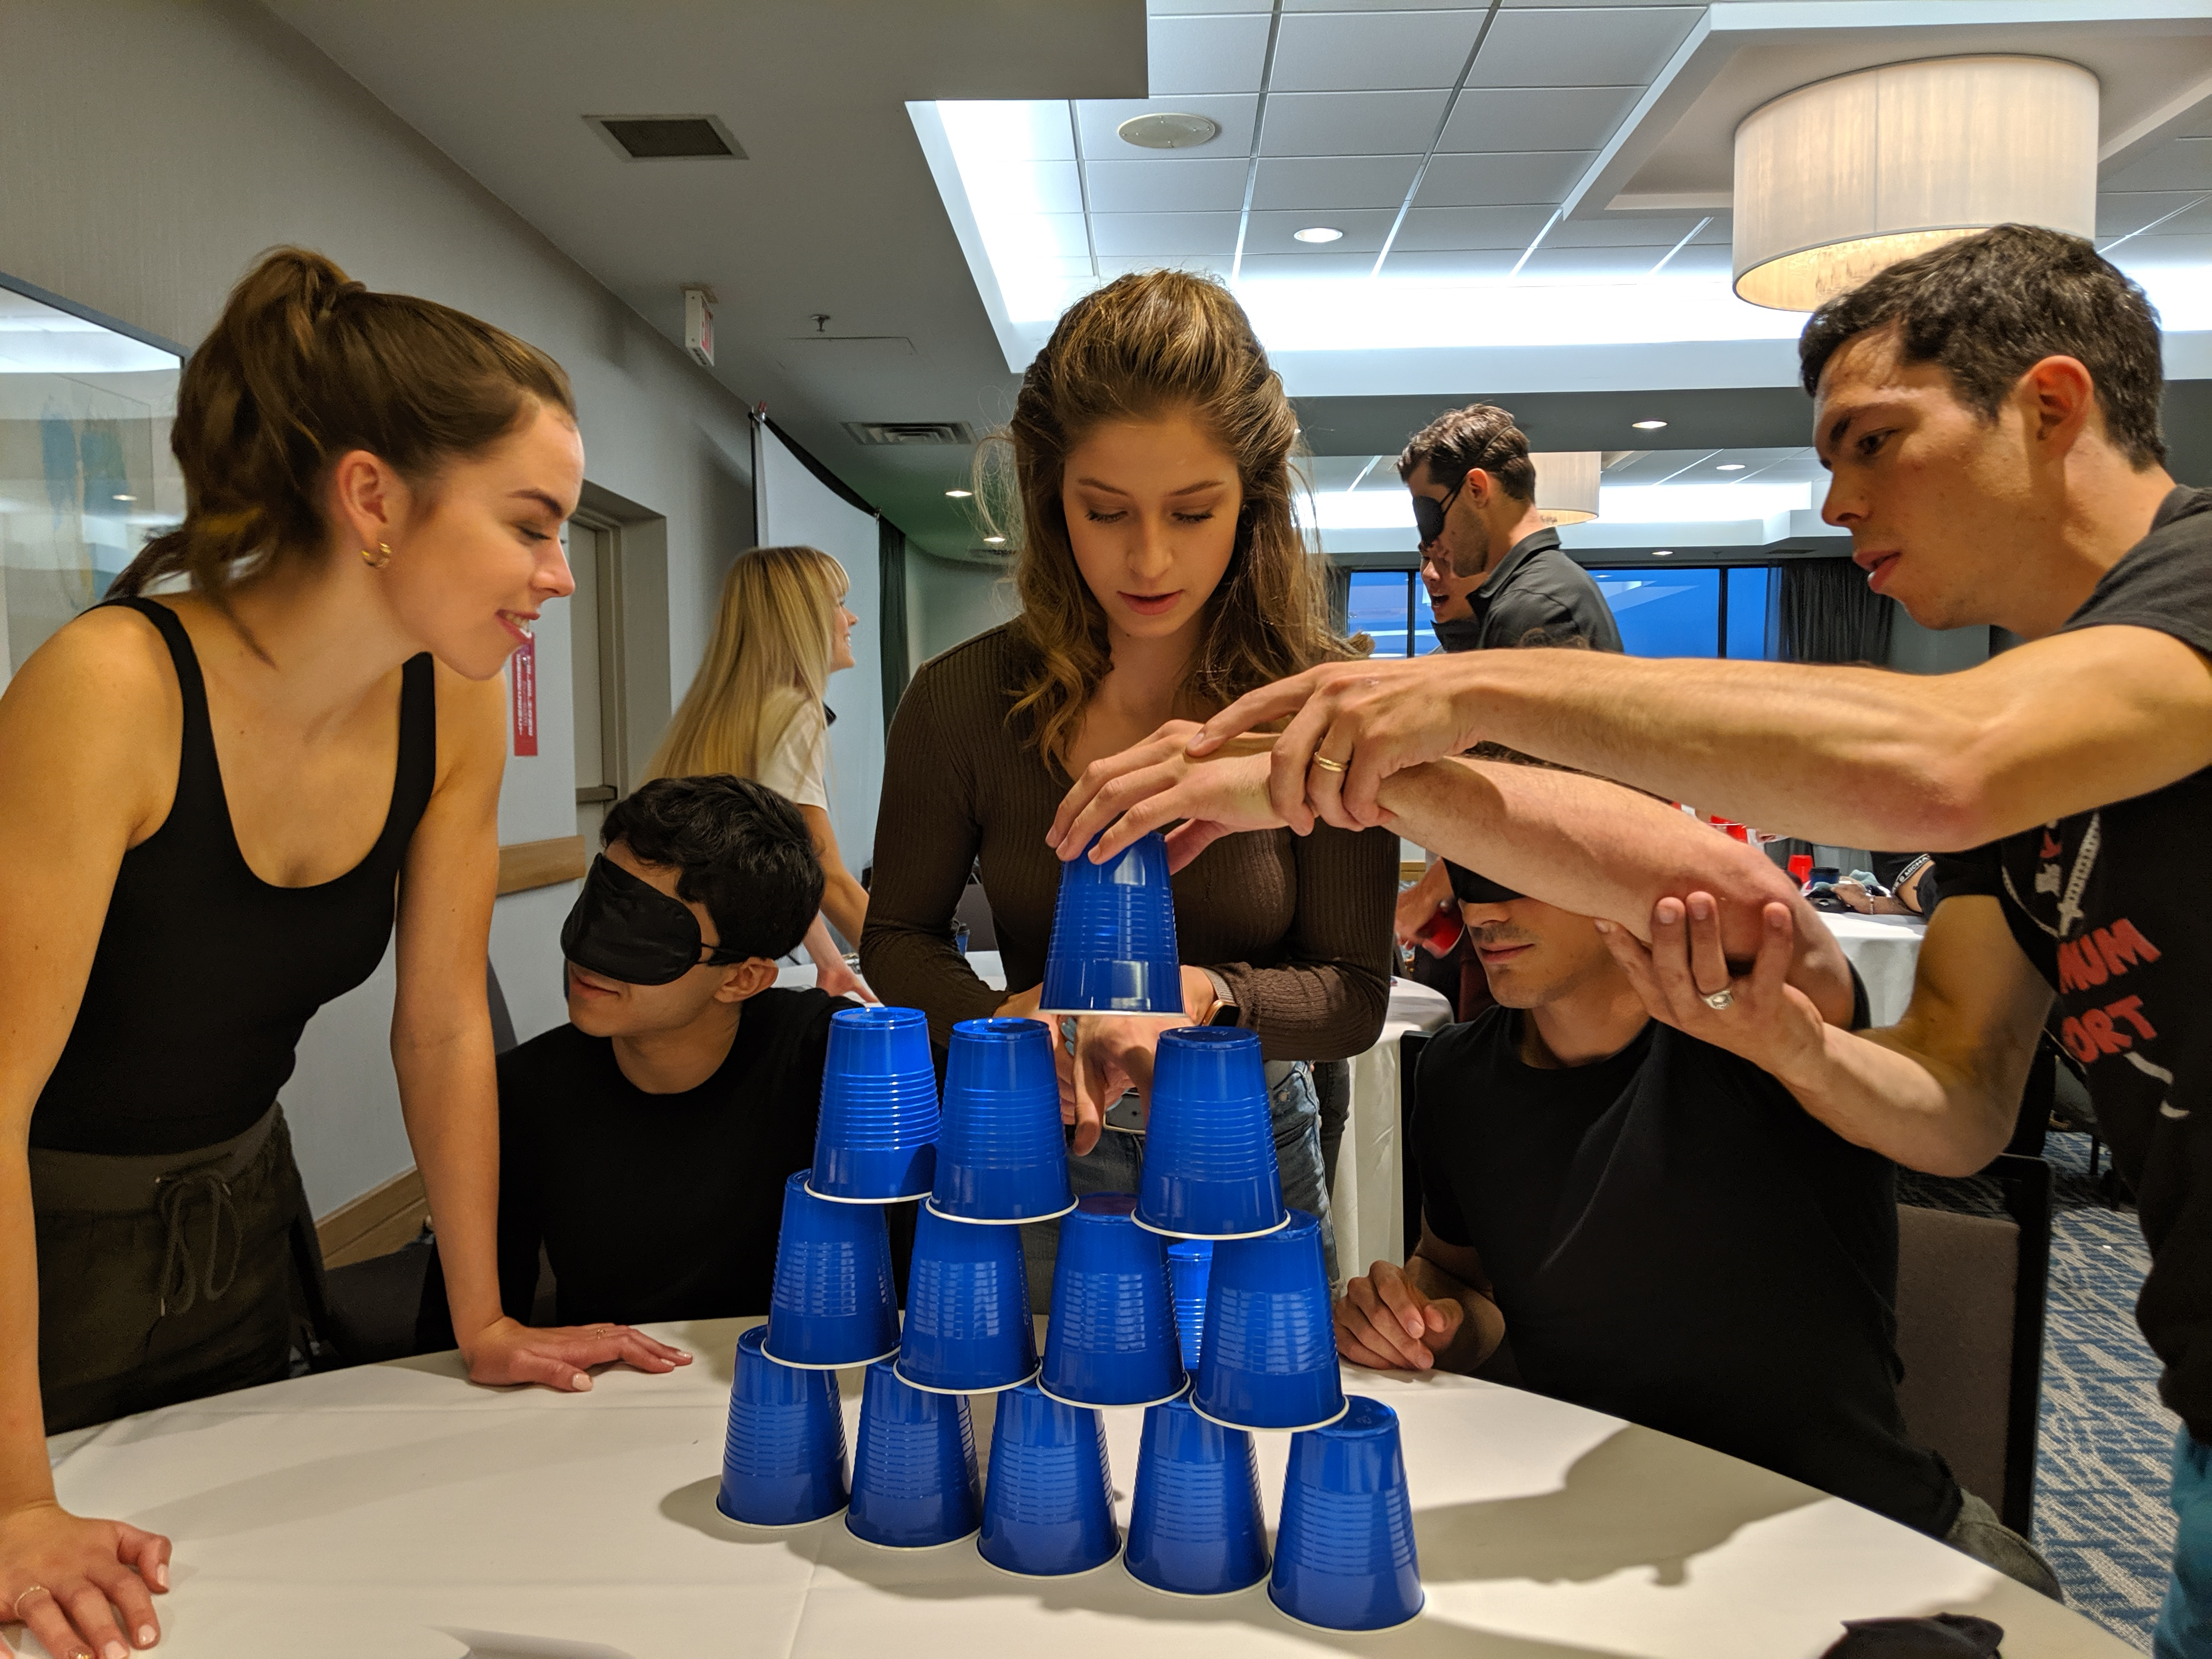 50-indoor-team-building-activities-image-7